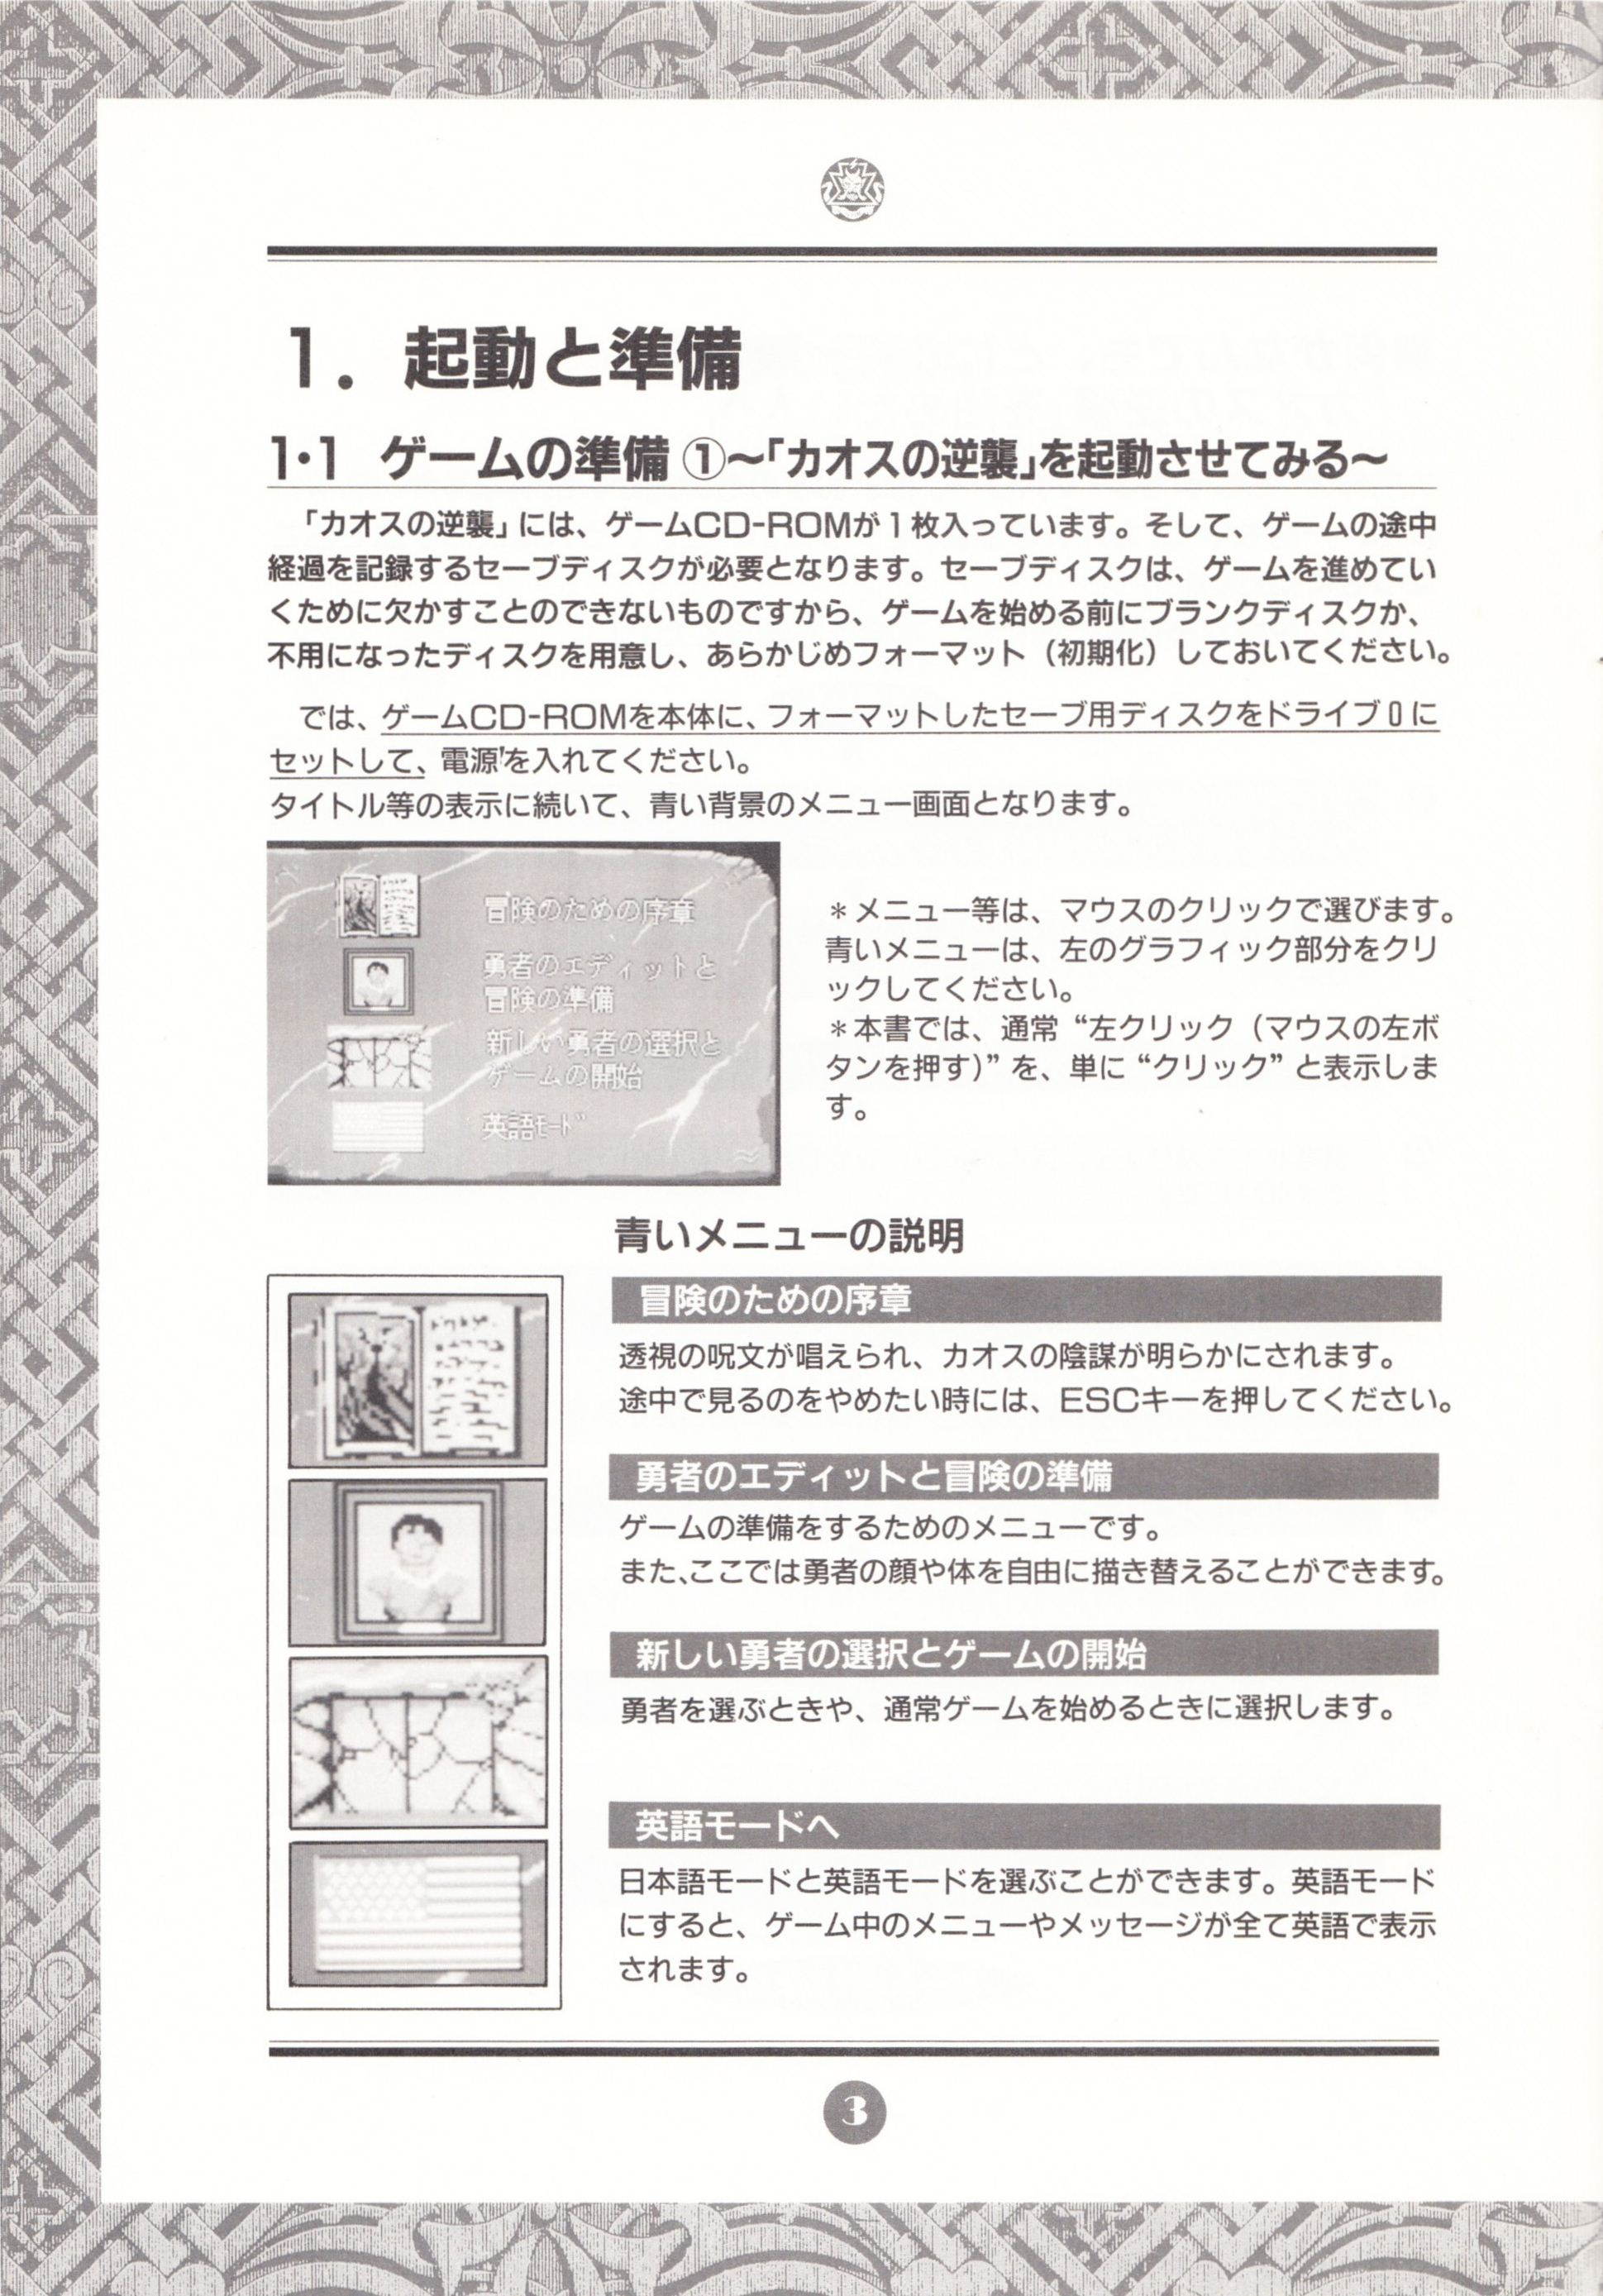 Game - Chaos Strikes Back - JP - FM Towns - An Operation Manual - Page 006 - Scan